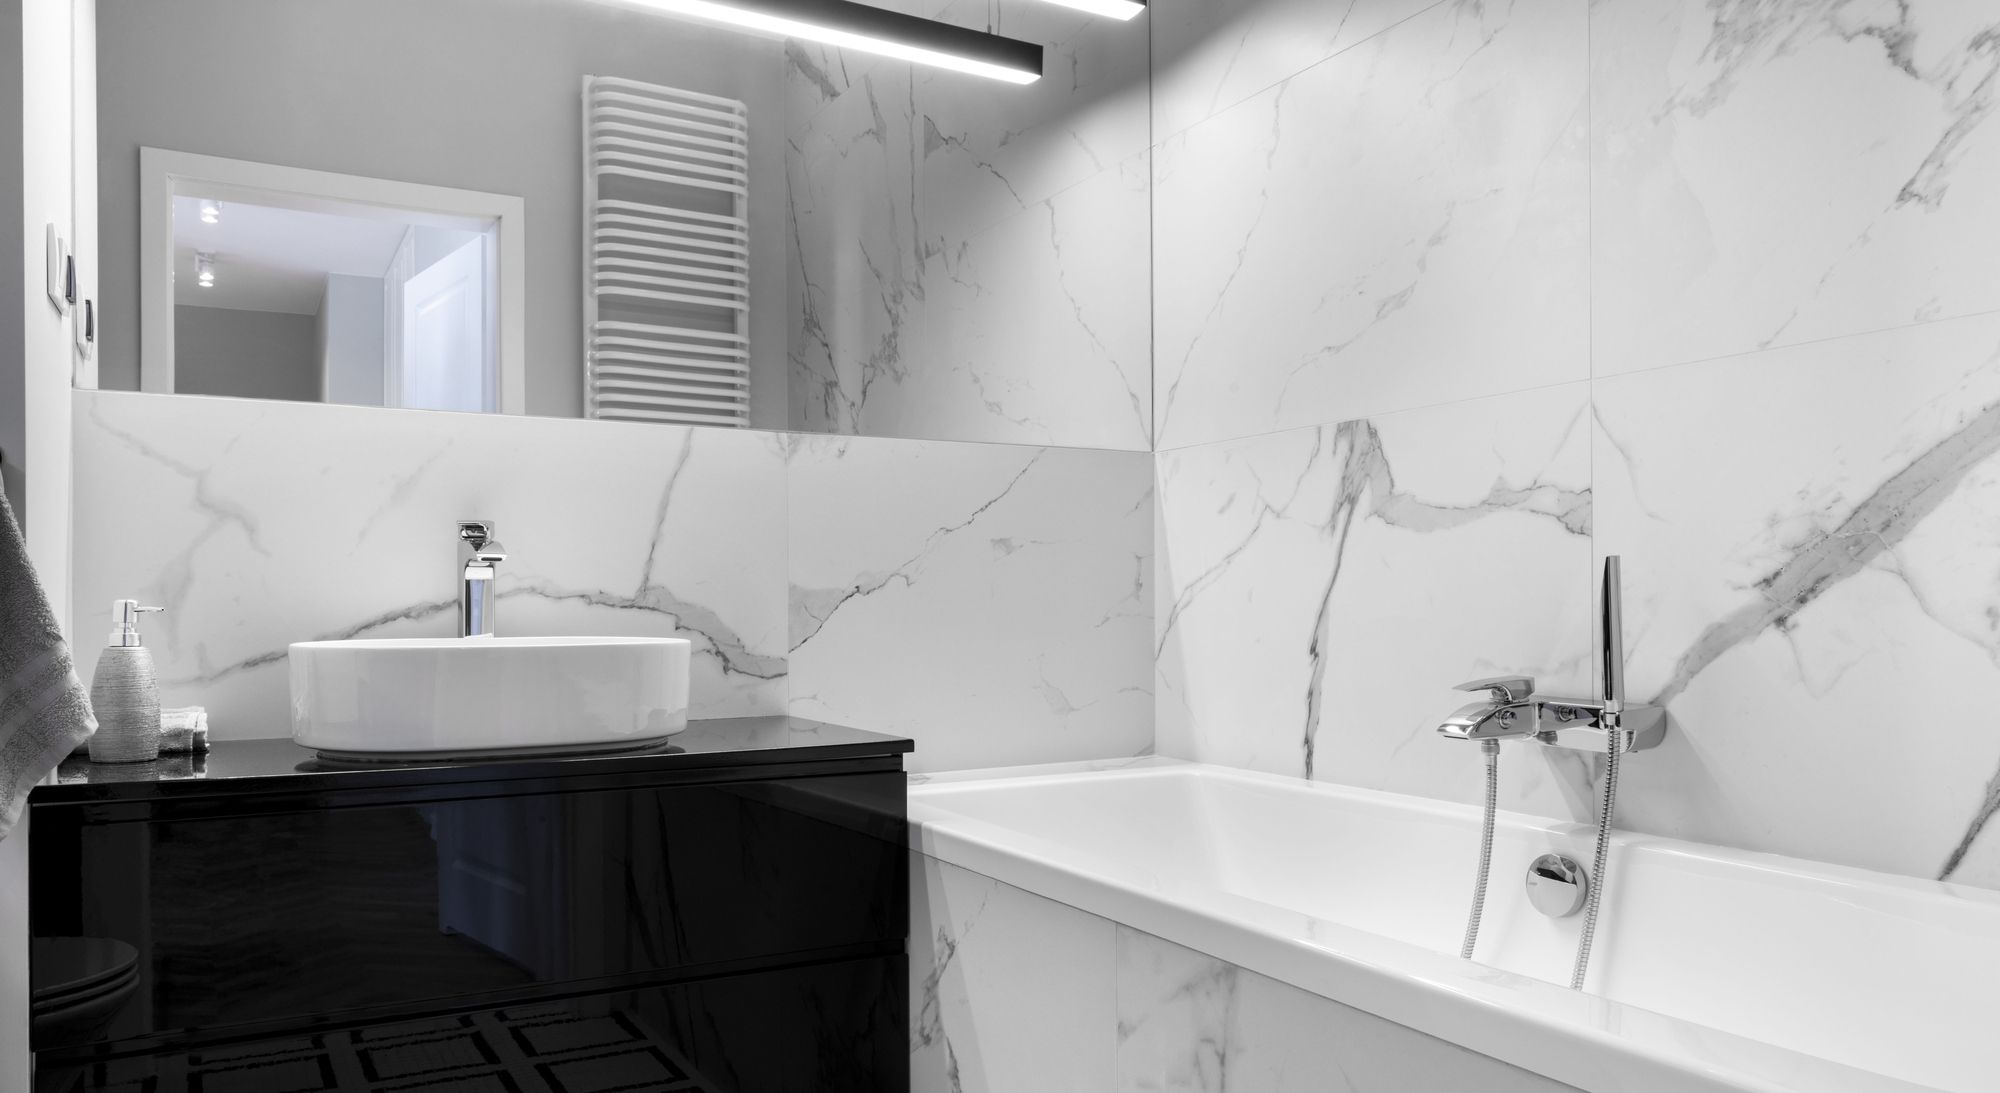 Clean, refreshing, and contemporary bathroom featuring our